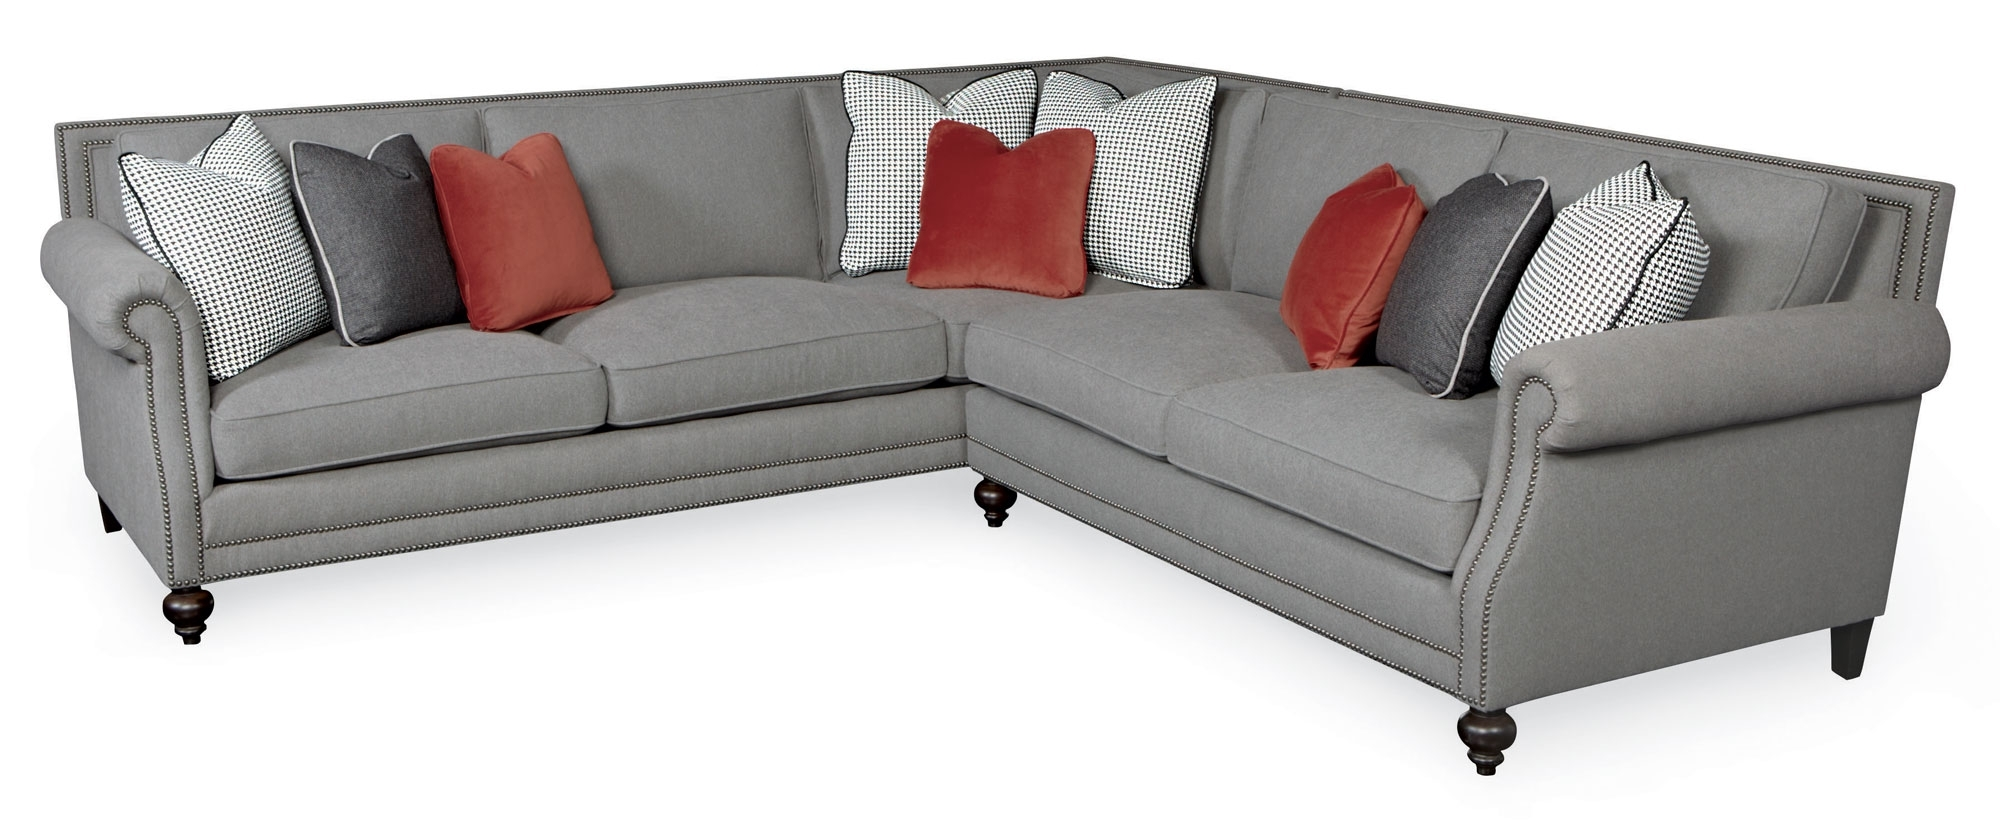 Most Up To Date Sectional Sofas With Nailheads For Sectional Sofa Design: Nailhead Sectional Sofa Fabric Leather (View 9 of 15)